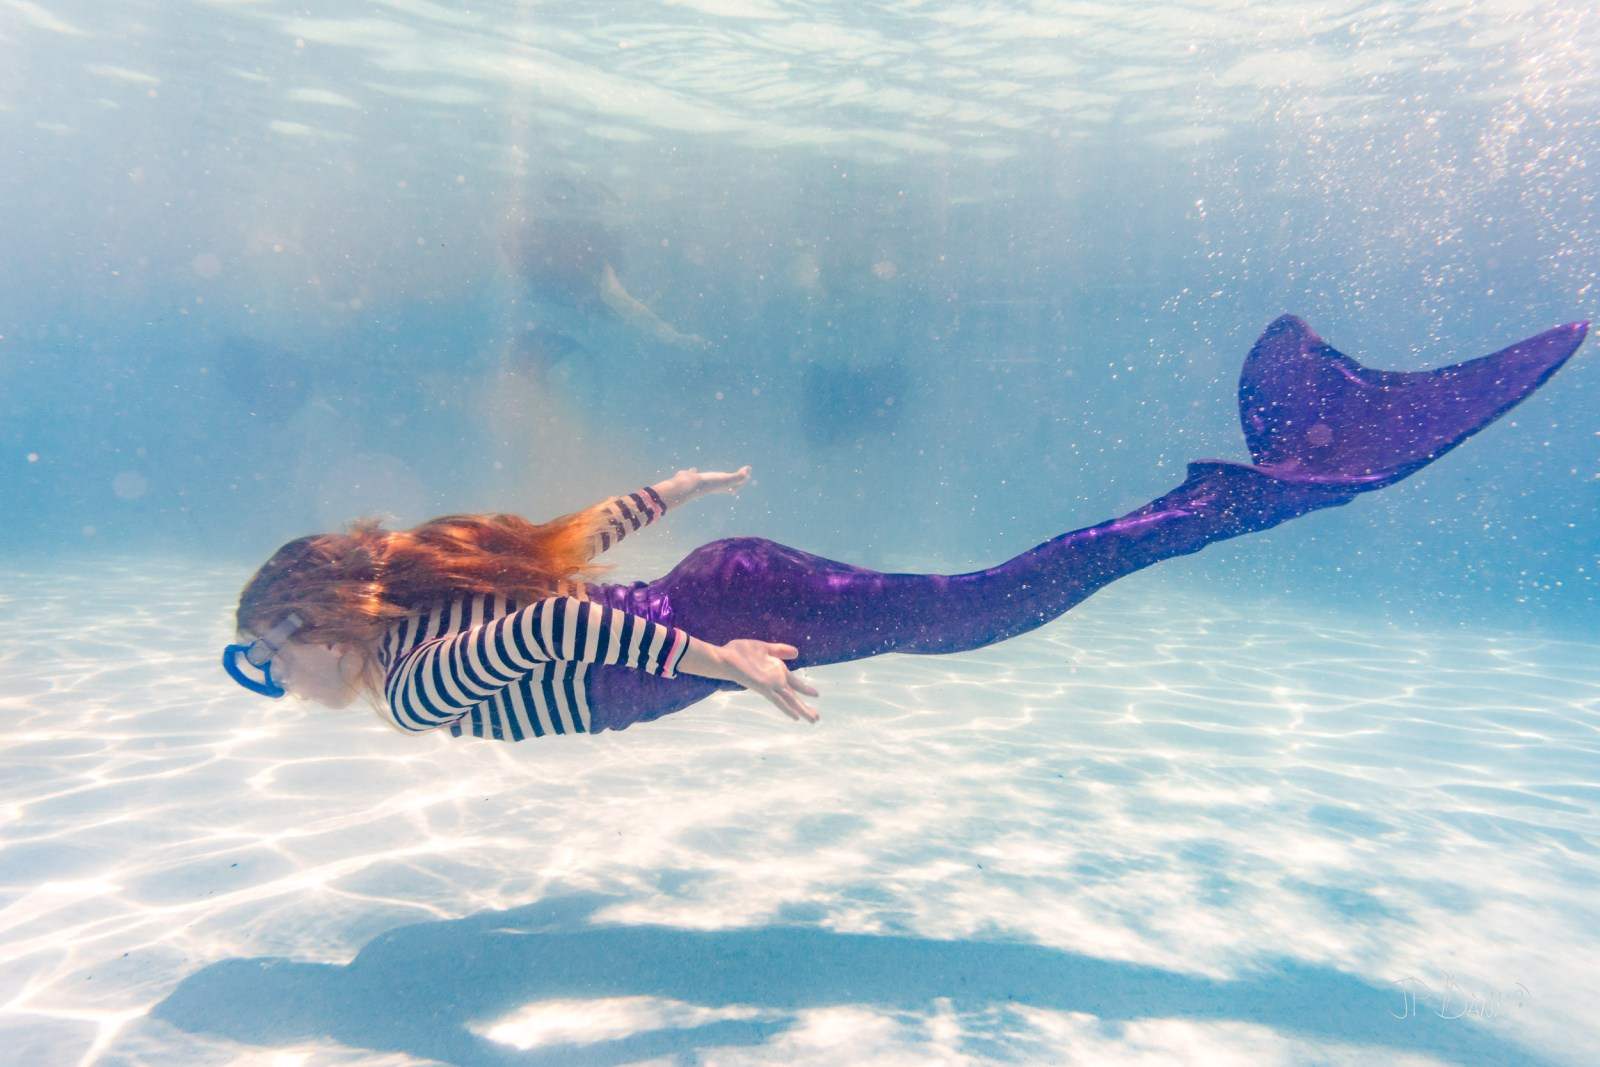 Underwater view of girl on holiday swimming in pool with colorful mermaid tail